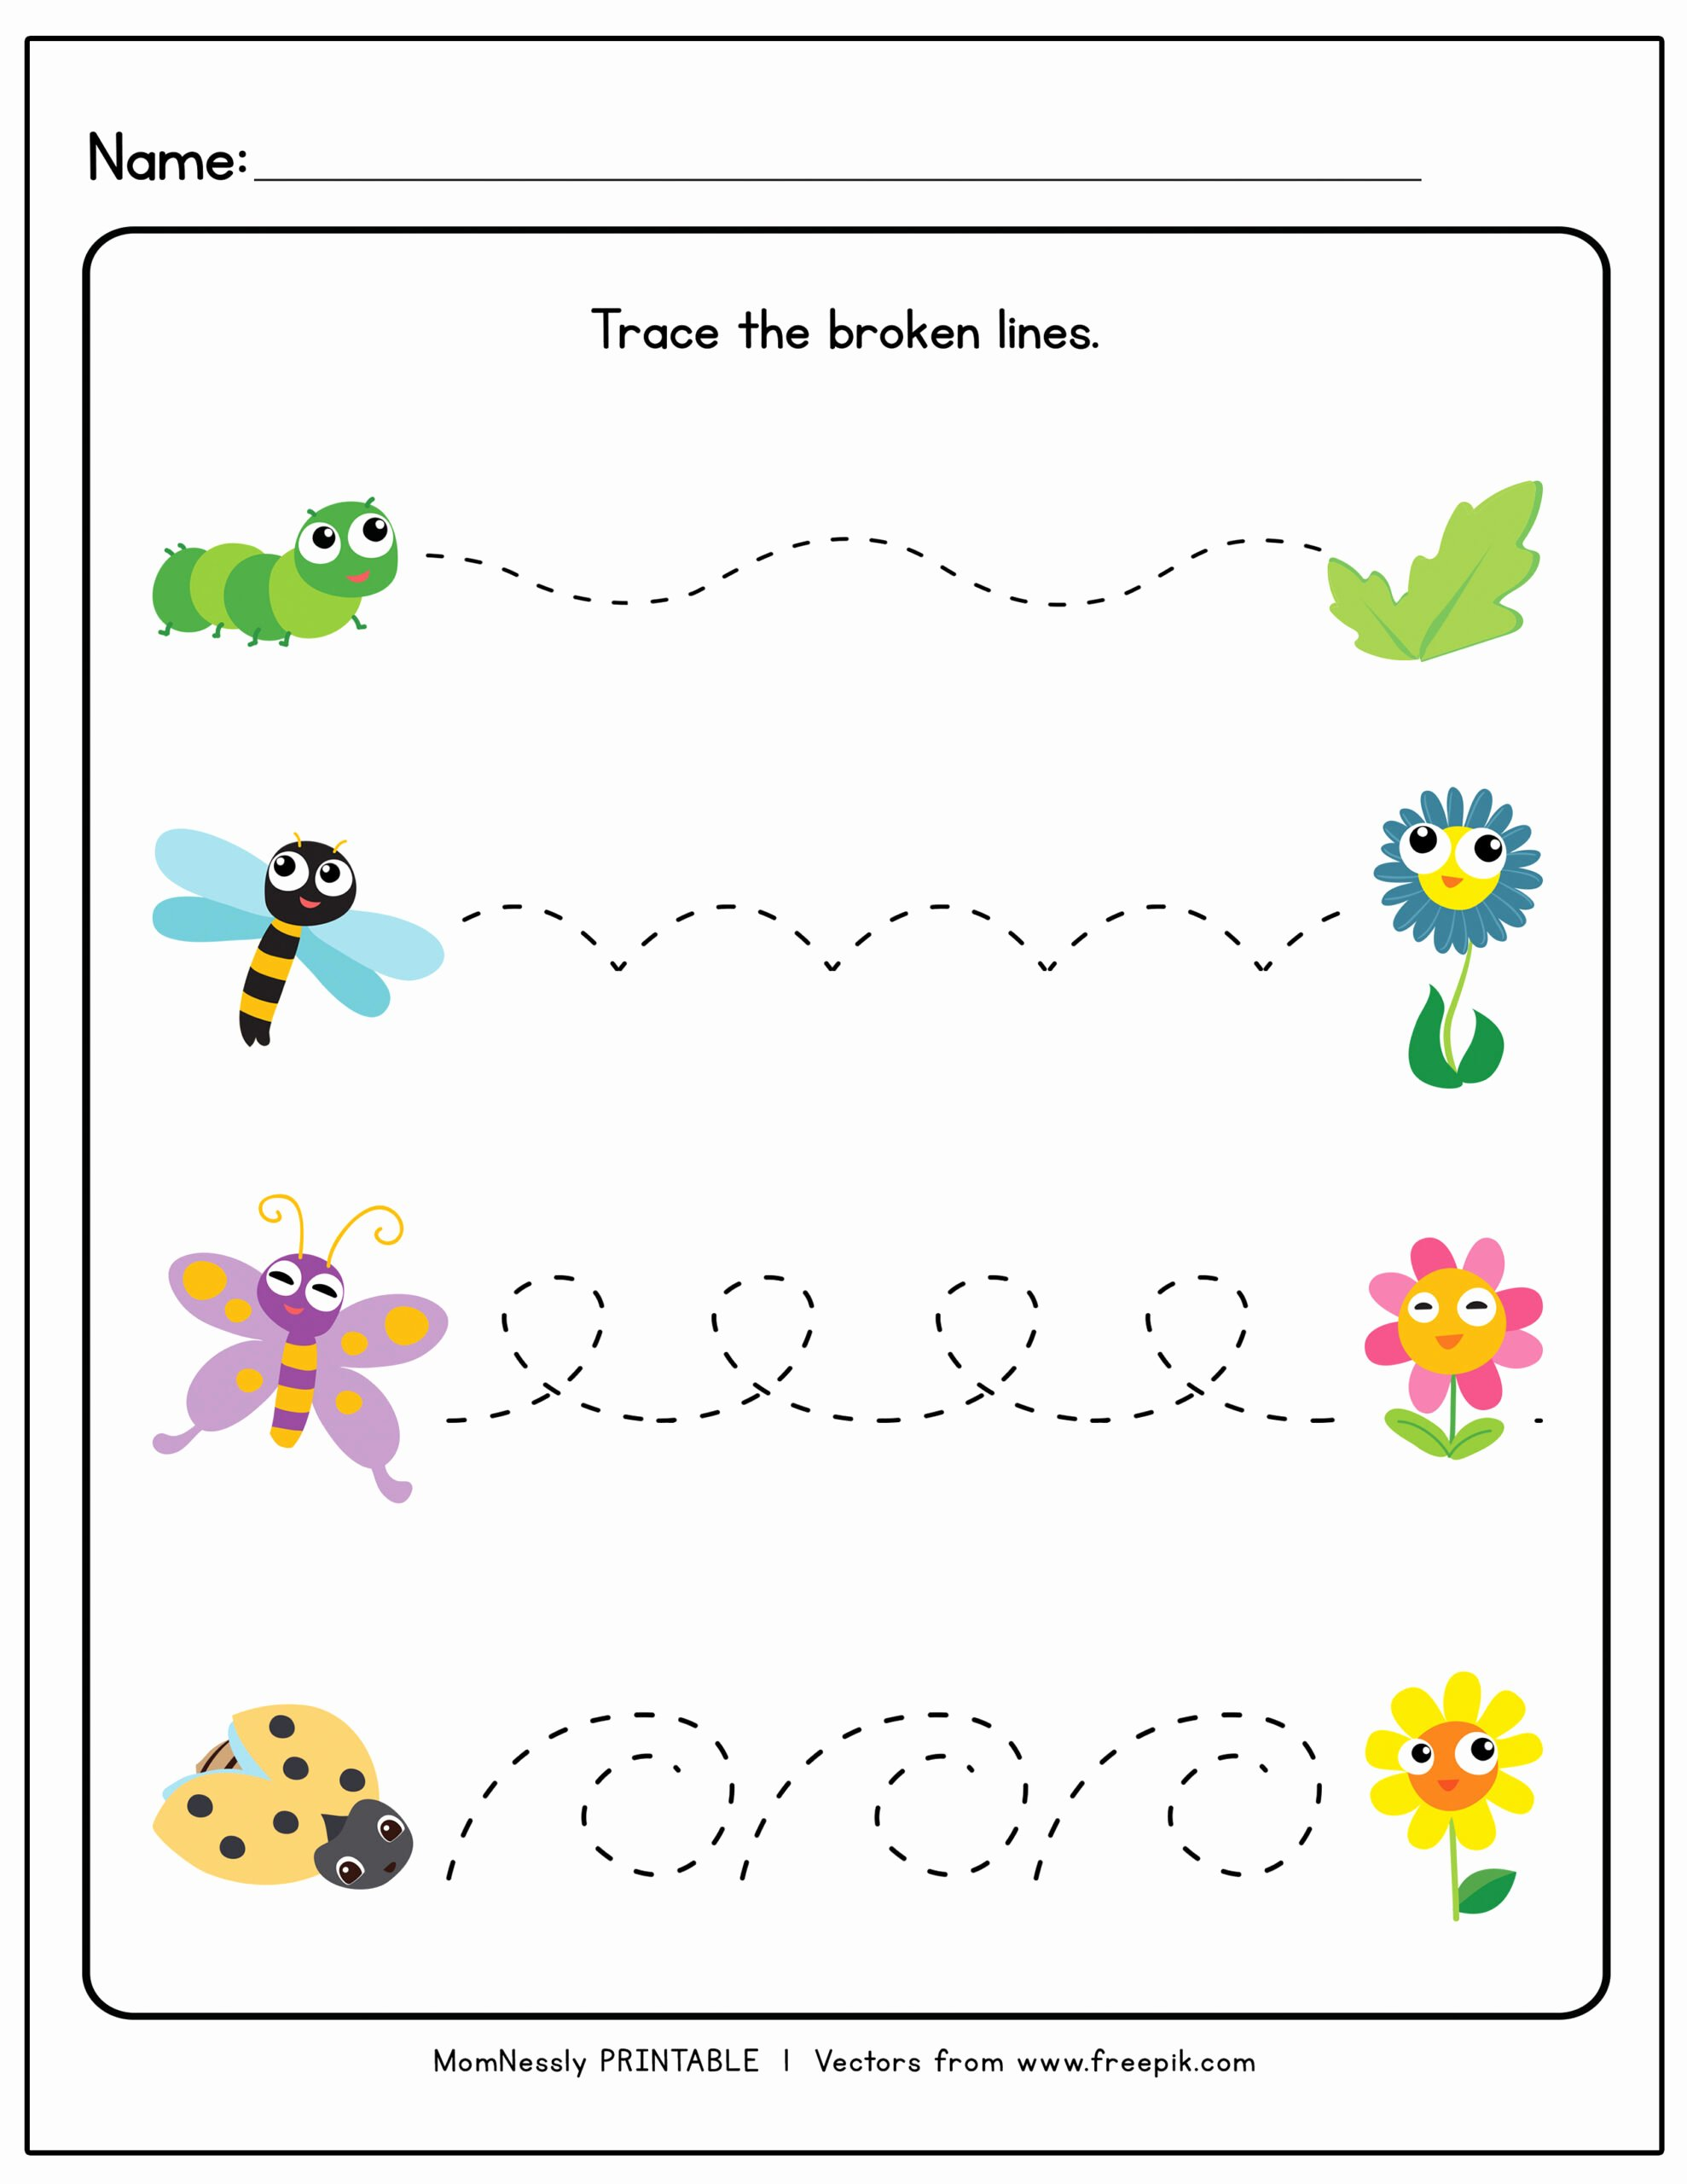 Tracing Lines Worksheets for Preschoolers Fresh Tracing Lines Worksheets Https Tribobot for toddlers Curved